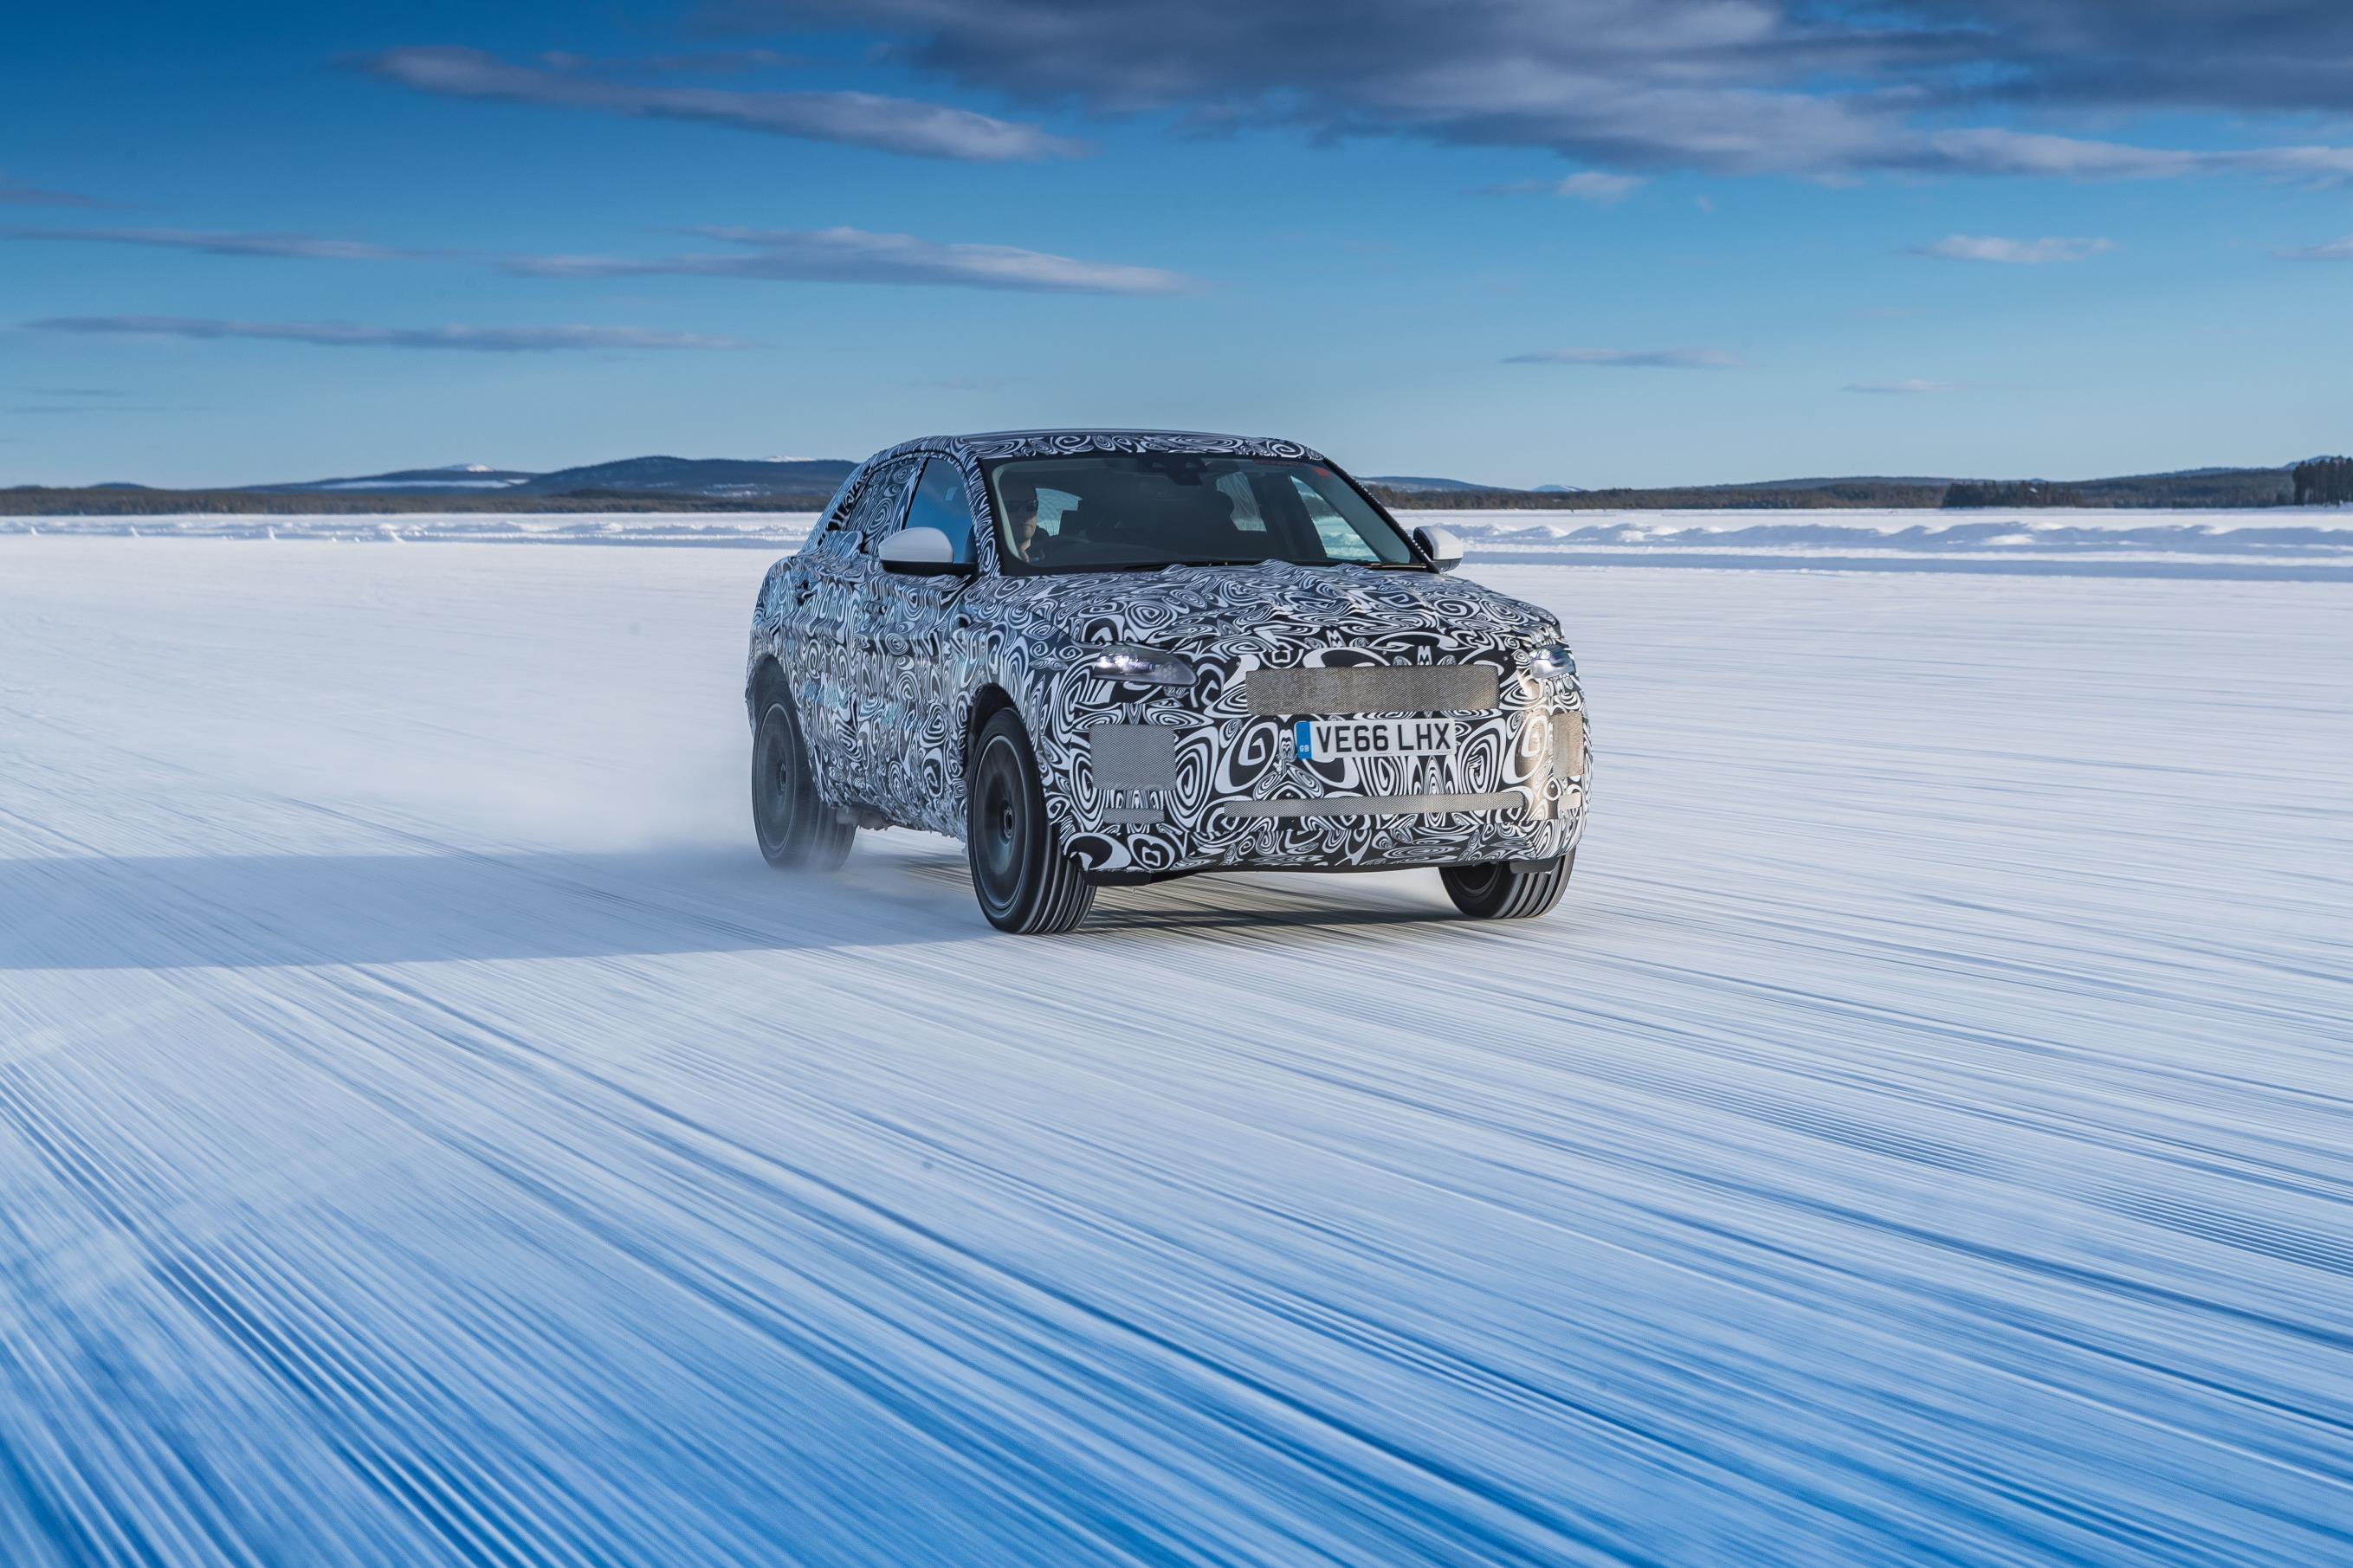 Jaguar E-Pace tested in world's most extreme conditions